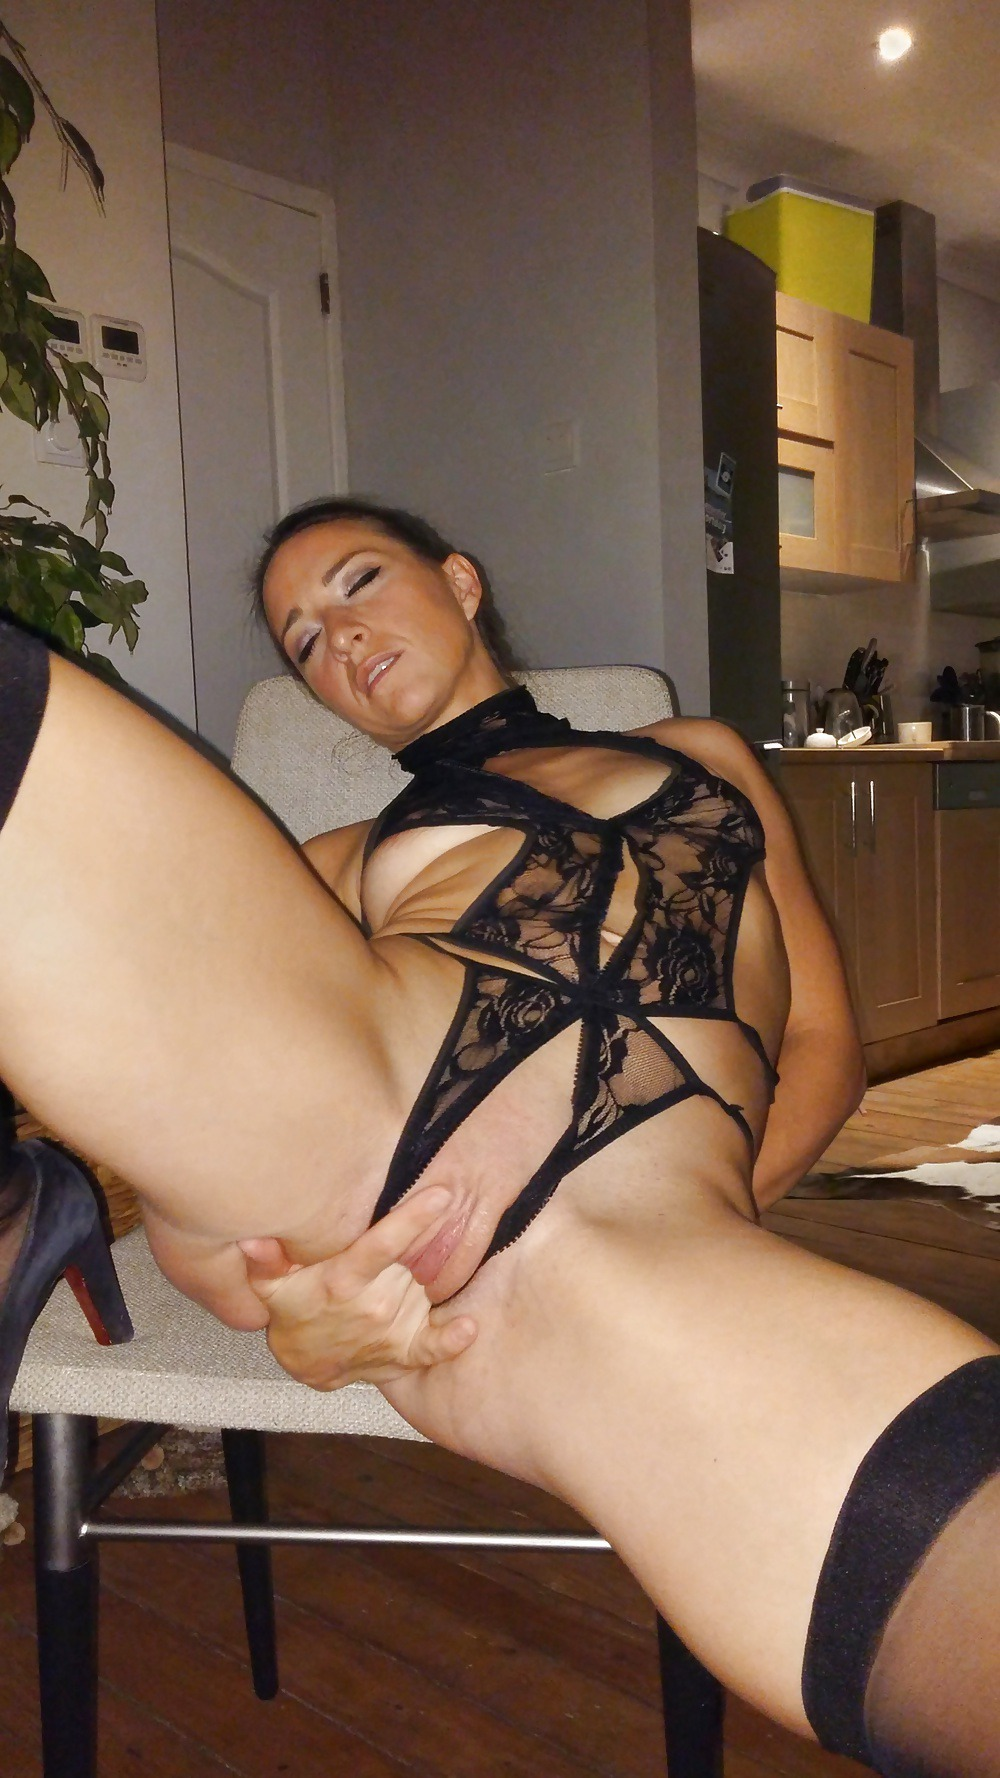 blonde shemale thais schiavo tugging on her hard cockdia video tube videos tmb